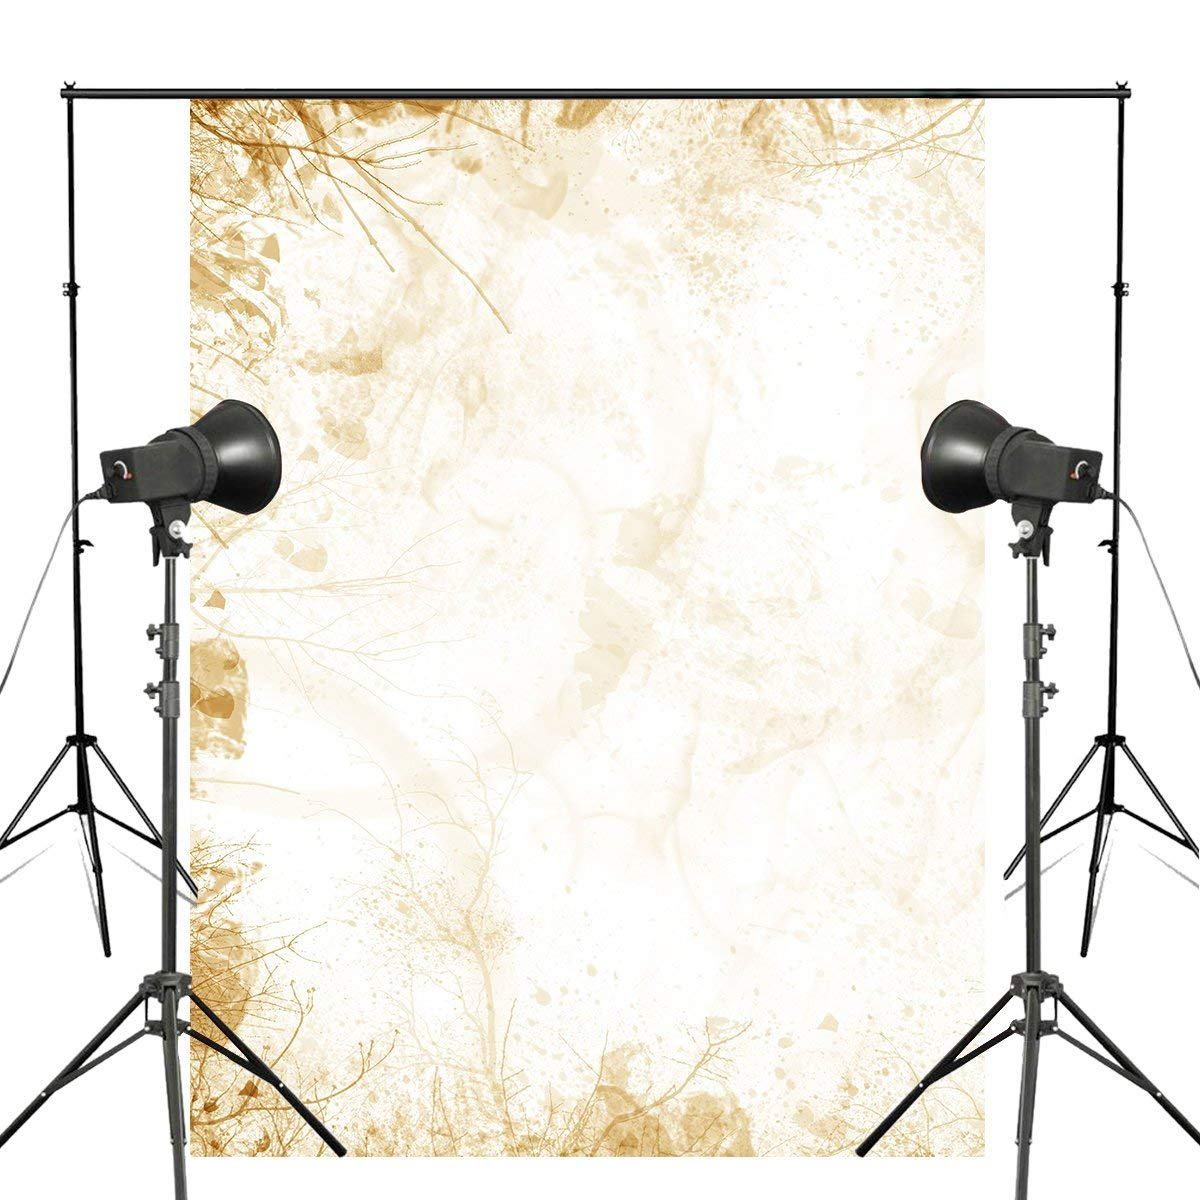 Bright Dry Twigs Photography Background Painting Backdrop Natural Scenery Photo Studio Props Backdrop Wall 5x7ft-in Photo Studio Accessories from Consumer Electronics